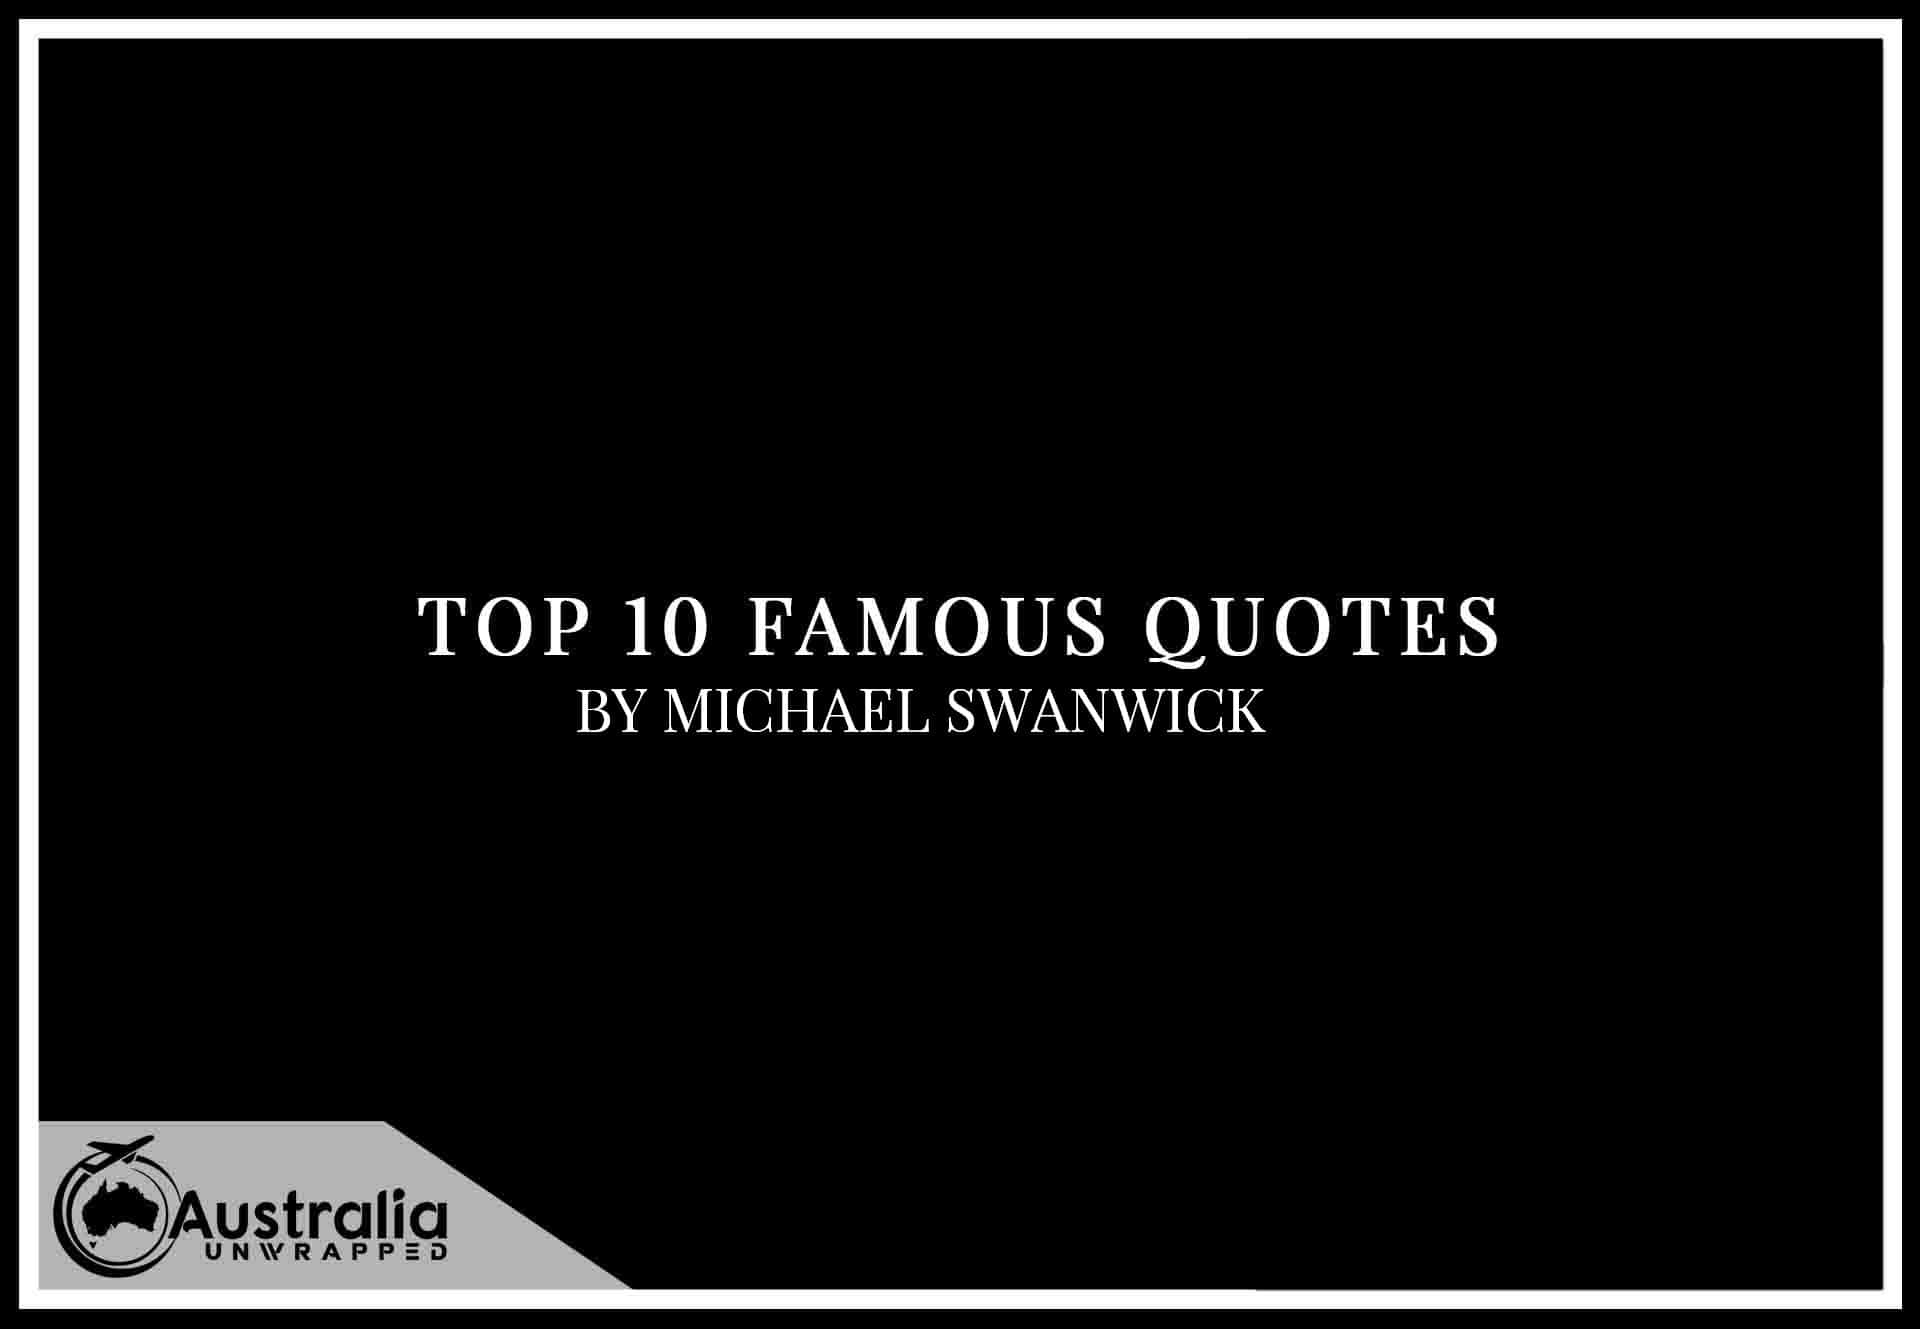 Top 10 Famous Quotes by Author Michael Swanwick